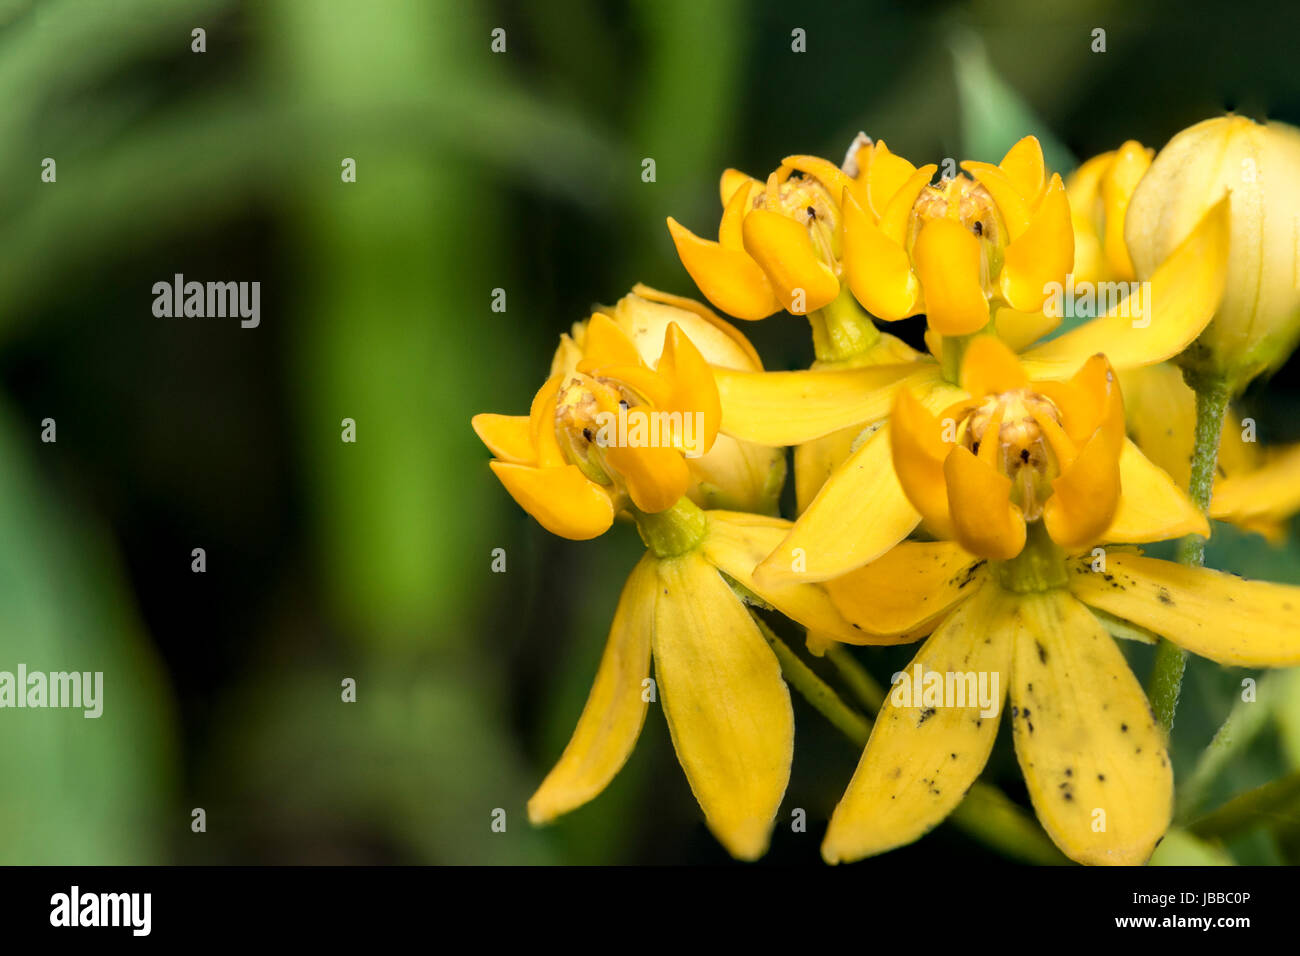 Yellow bell flowers in a garden stock photo royalty free image yellow bell flowers in a garden mightylinksfo